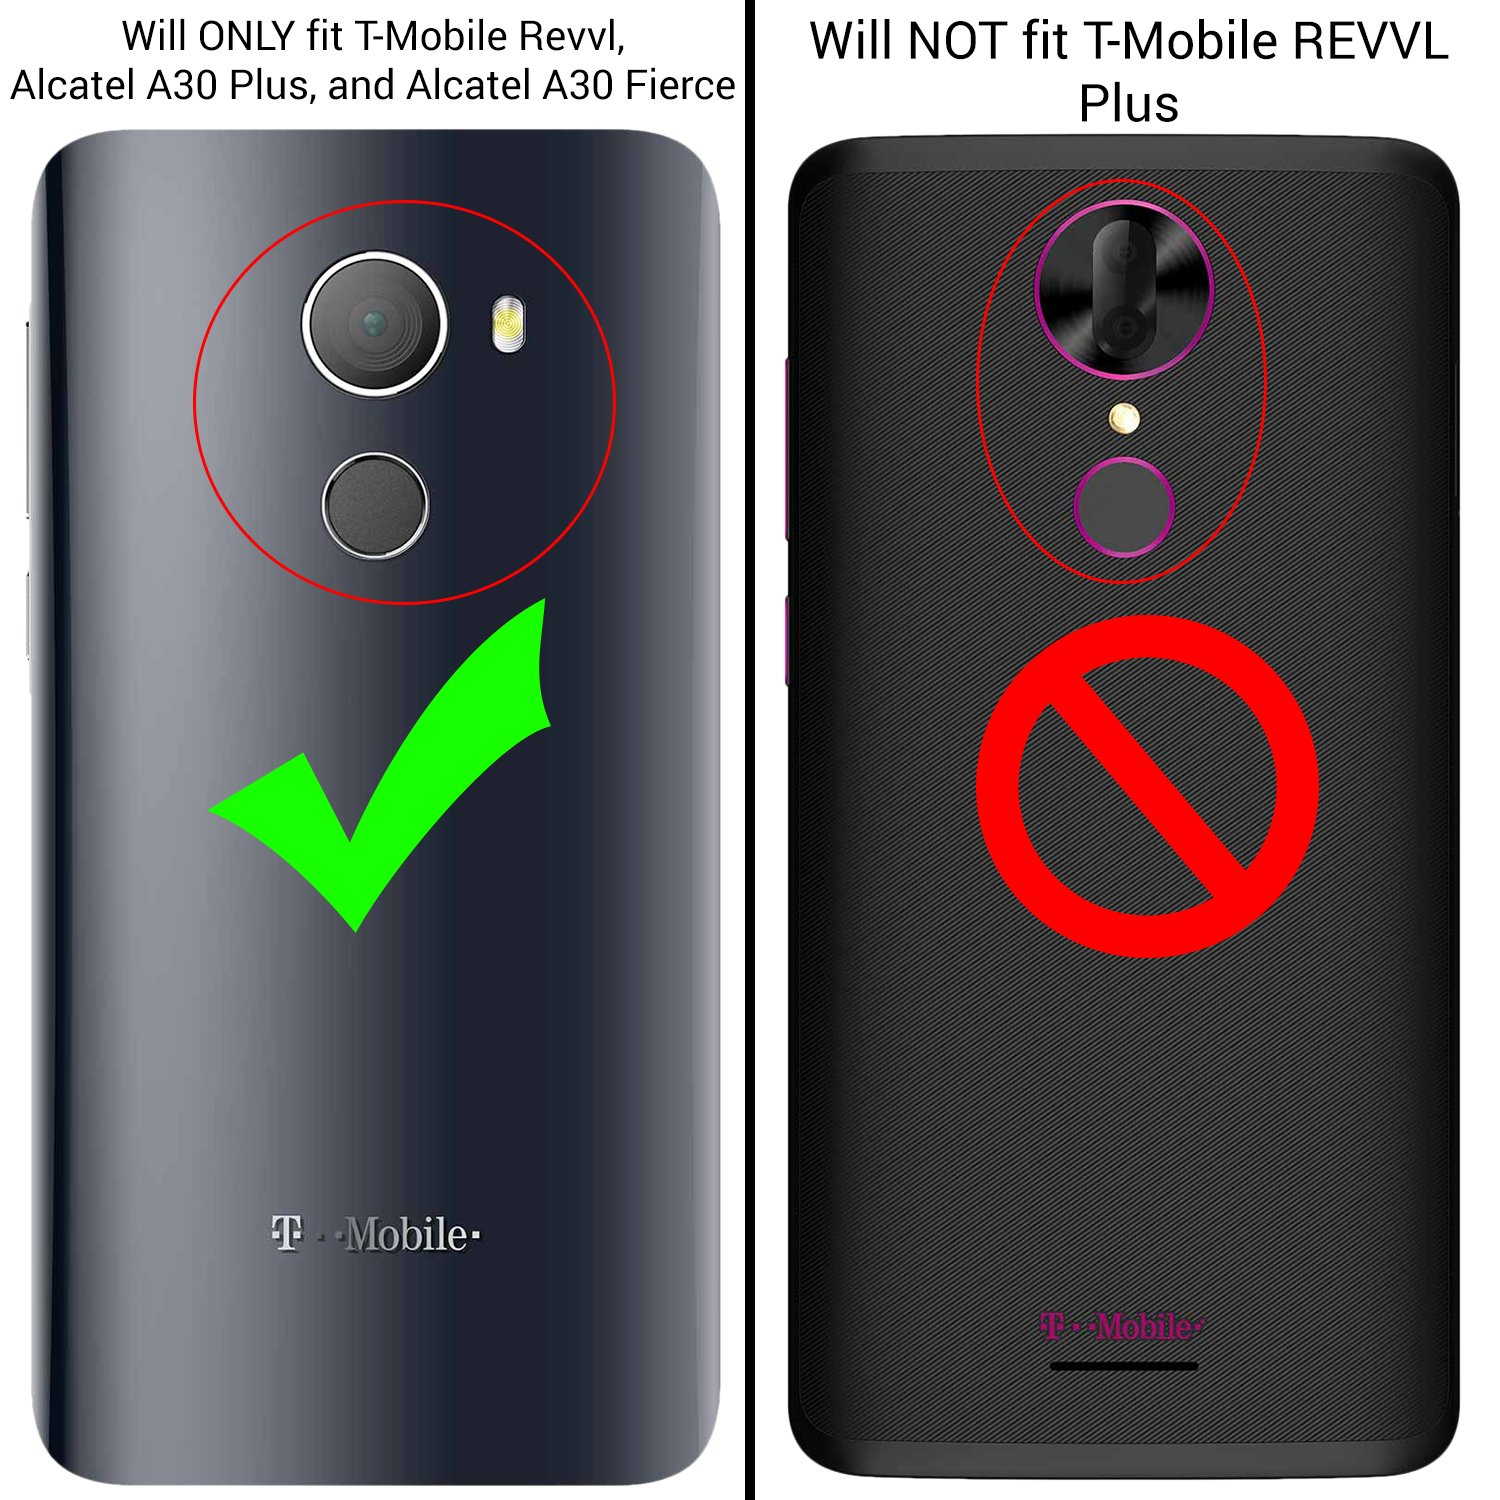 T-Mobile REVVL Case with [Tempered Glass Screen Protector], Alcatel A30  Fierce (MetroPCS) / Alcatel A30 Plus 5 5'' / Alcatel Walters, NageBee  [Heavy